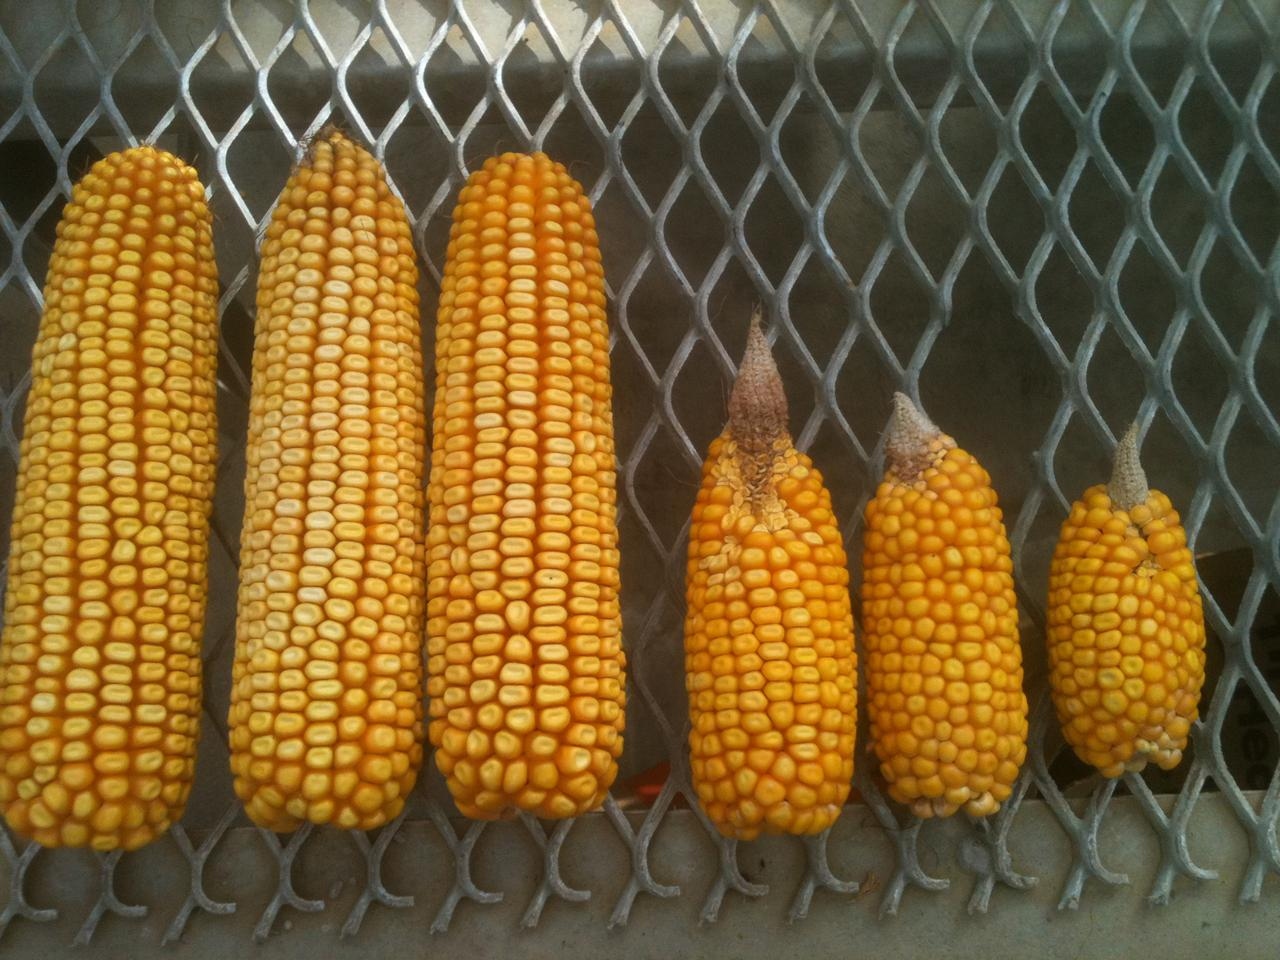 MSU's water-saving membranes dramatically improved corn yields during this summer's drought (Photo: MSU)